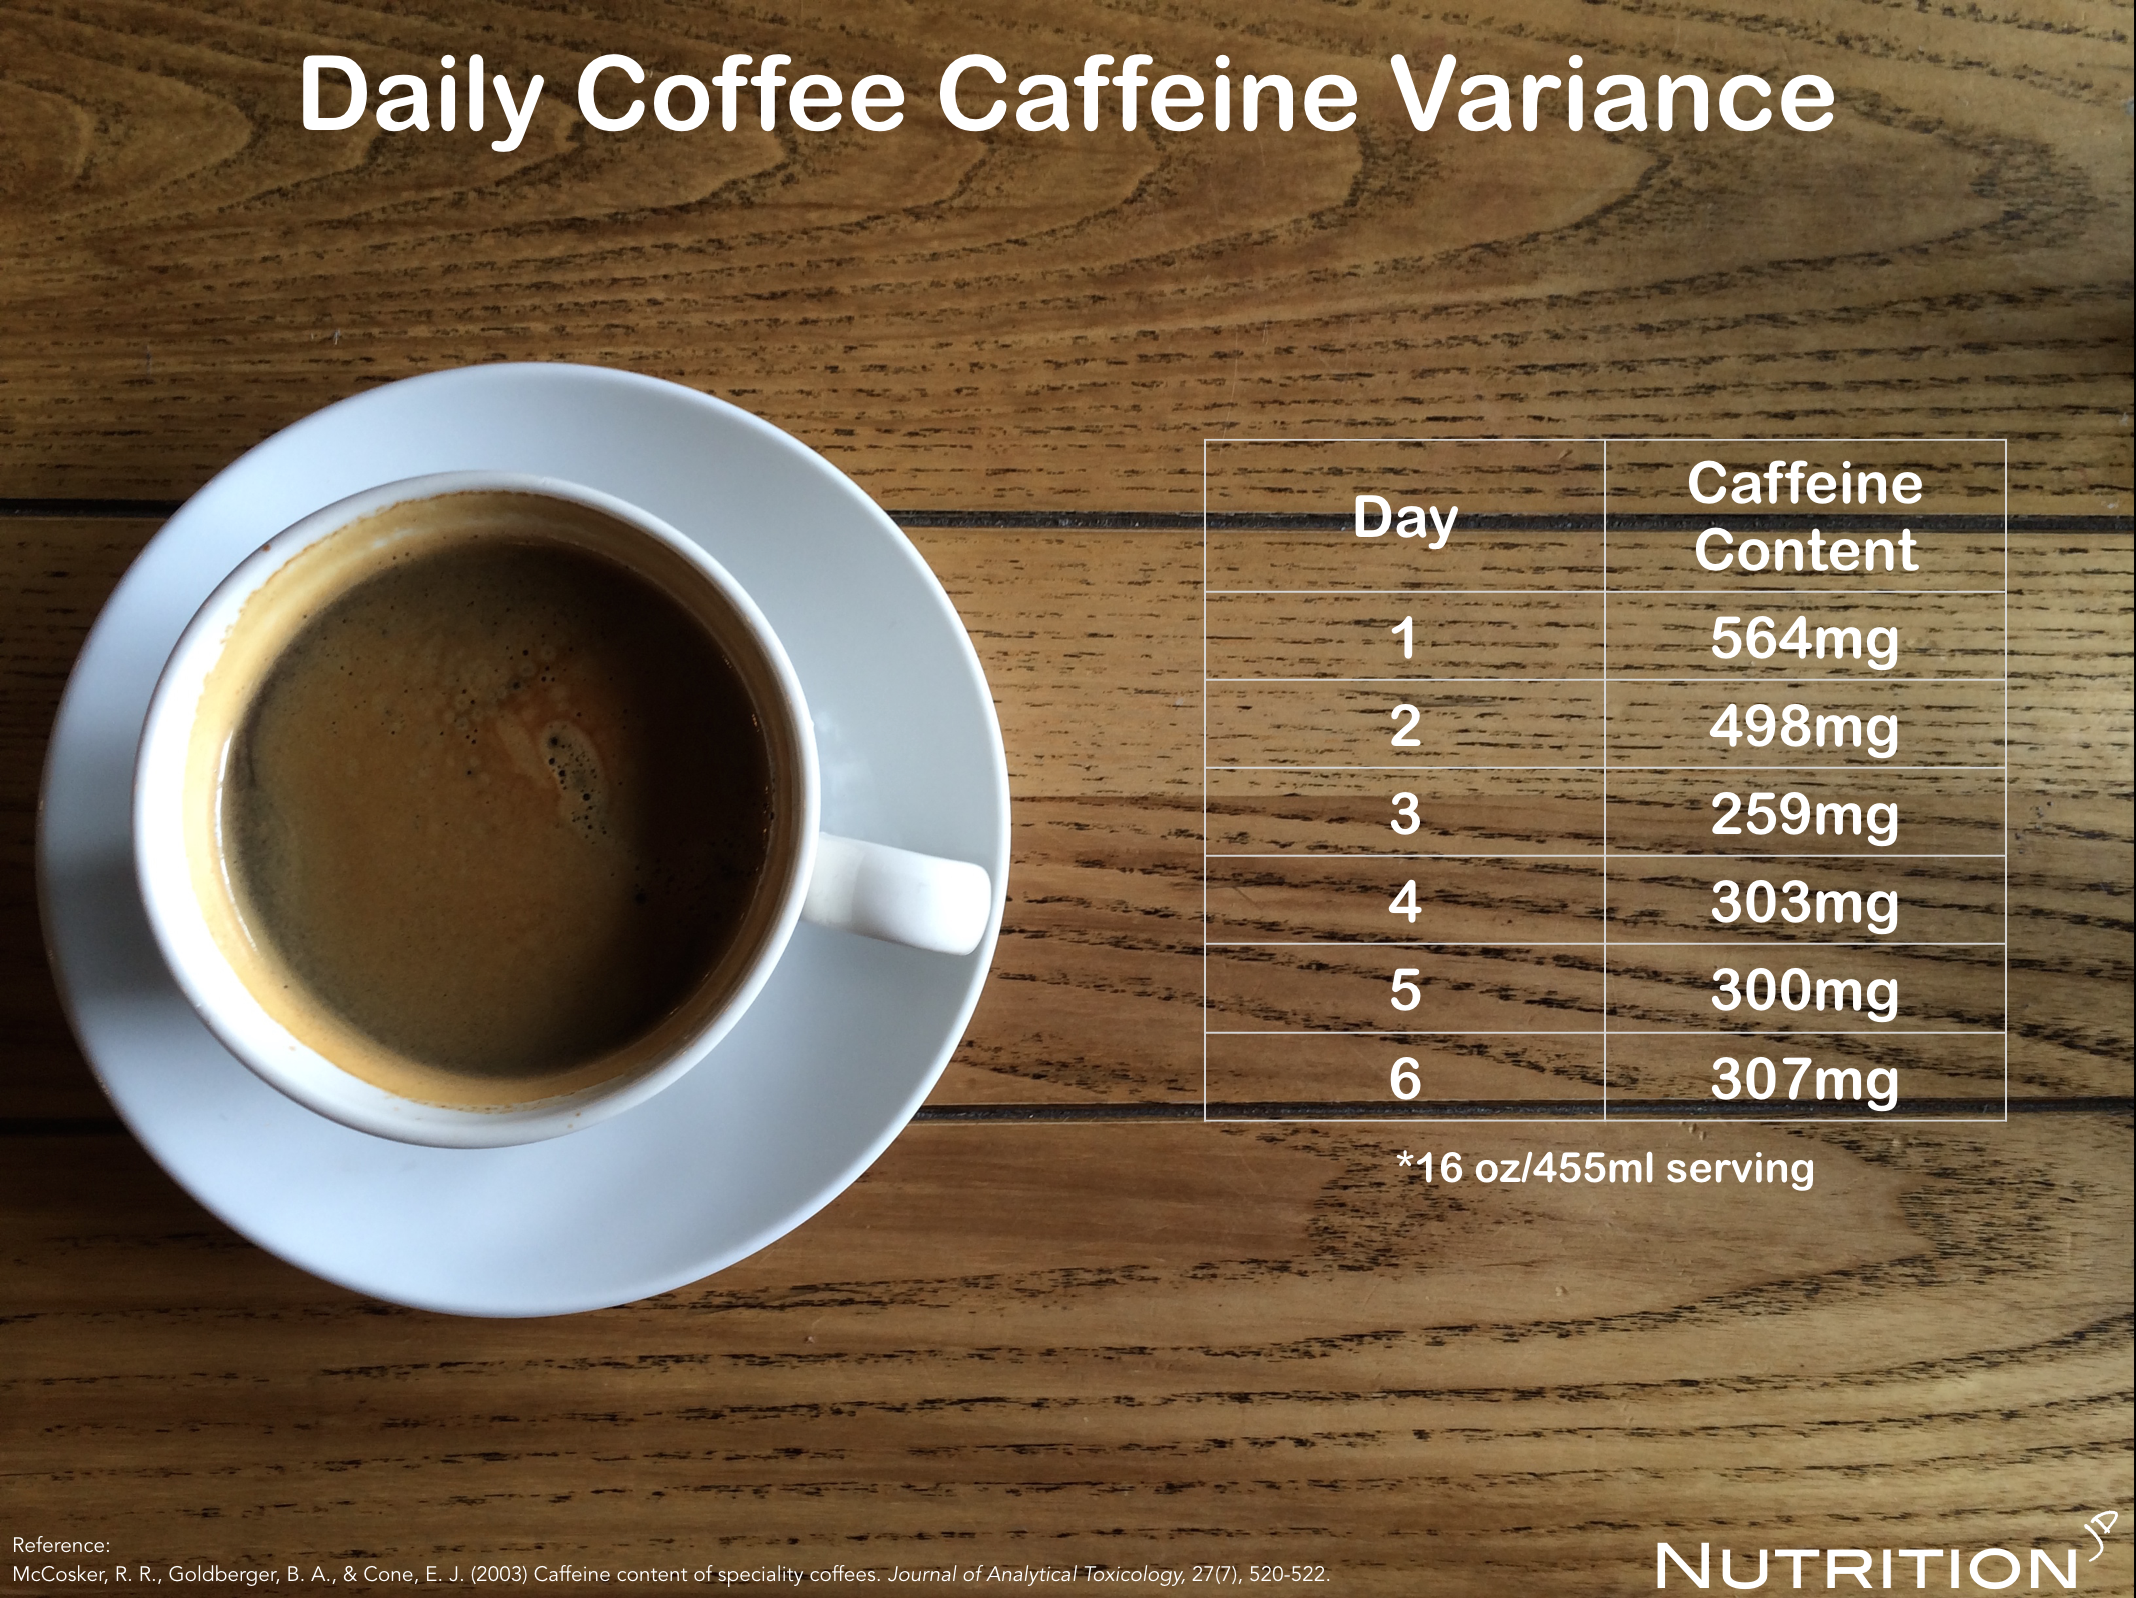 It must not be overlooked that the overconsumption of caffeine can cause  certain side effects such as jitters, headache, increased heart rate, ...